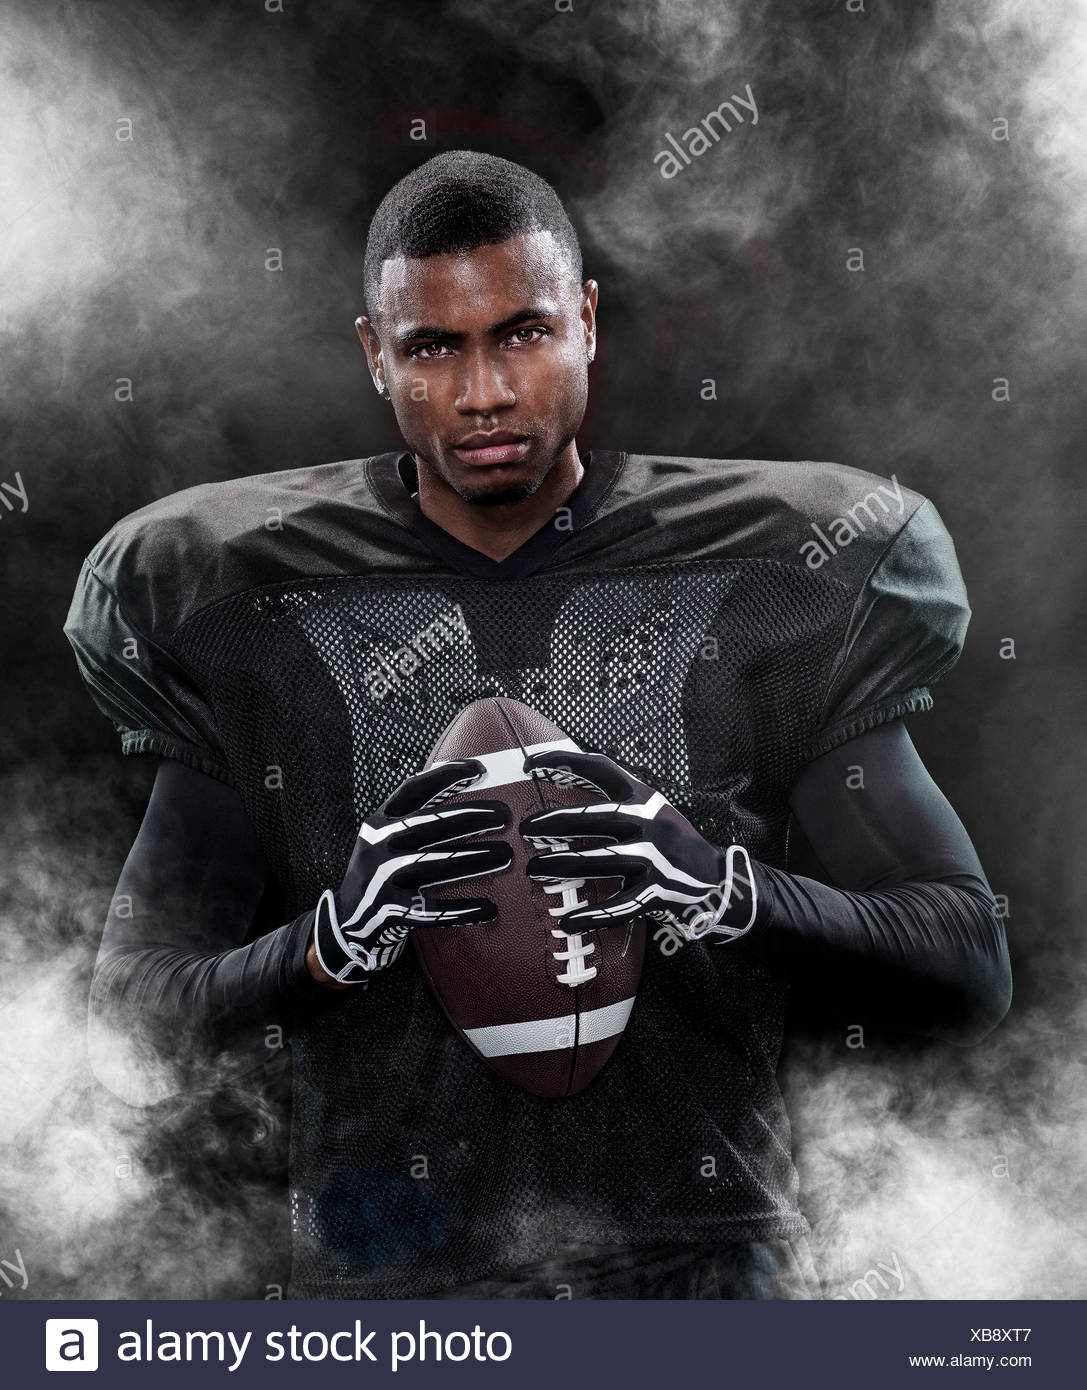 Portrait of an american football player surrounded by fog - Stock Image